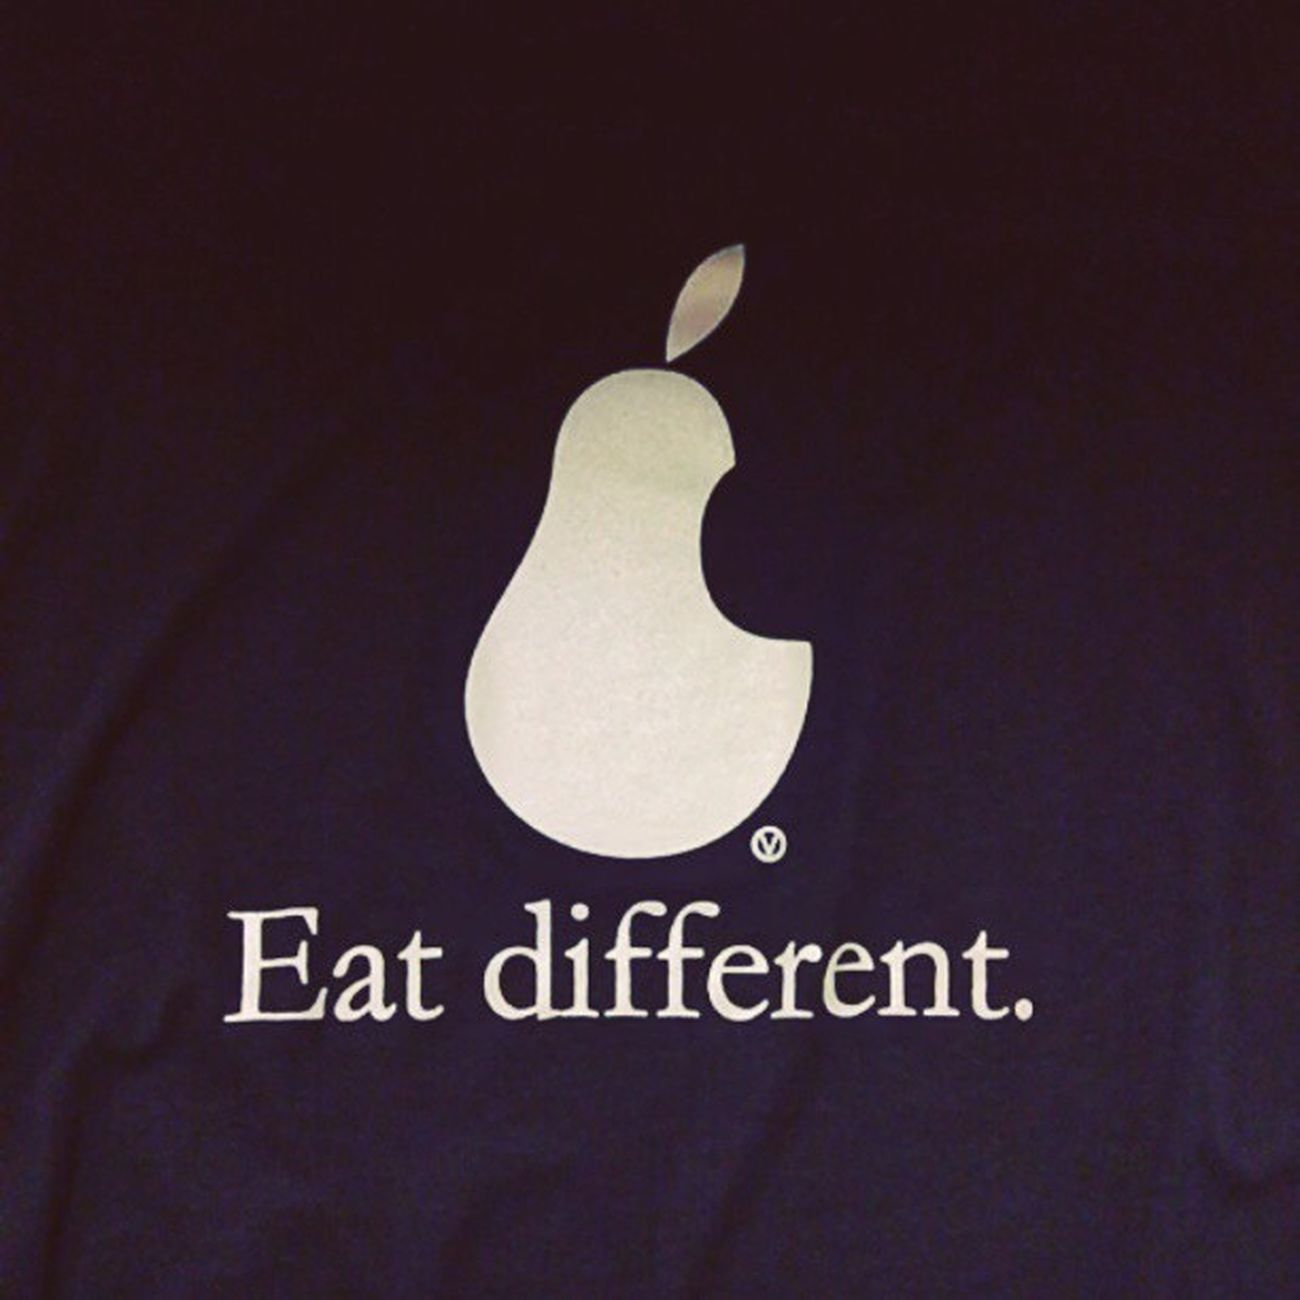 #eatdifferent #vegantshirts #vegfestuk #london #vegan #ecofashion #fairwear London Fairtrade Vegan Organic Vegantshirts Fairwear Meatismurder Ecofashion Eatdifferent Vegfestuk Vegfestuklondon